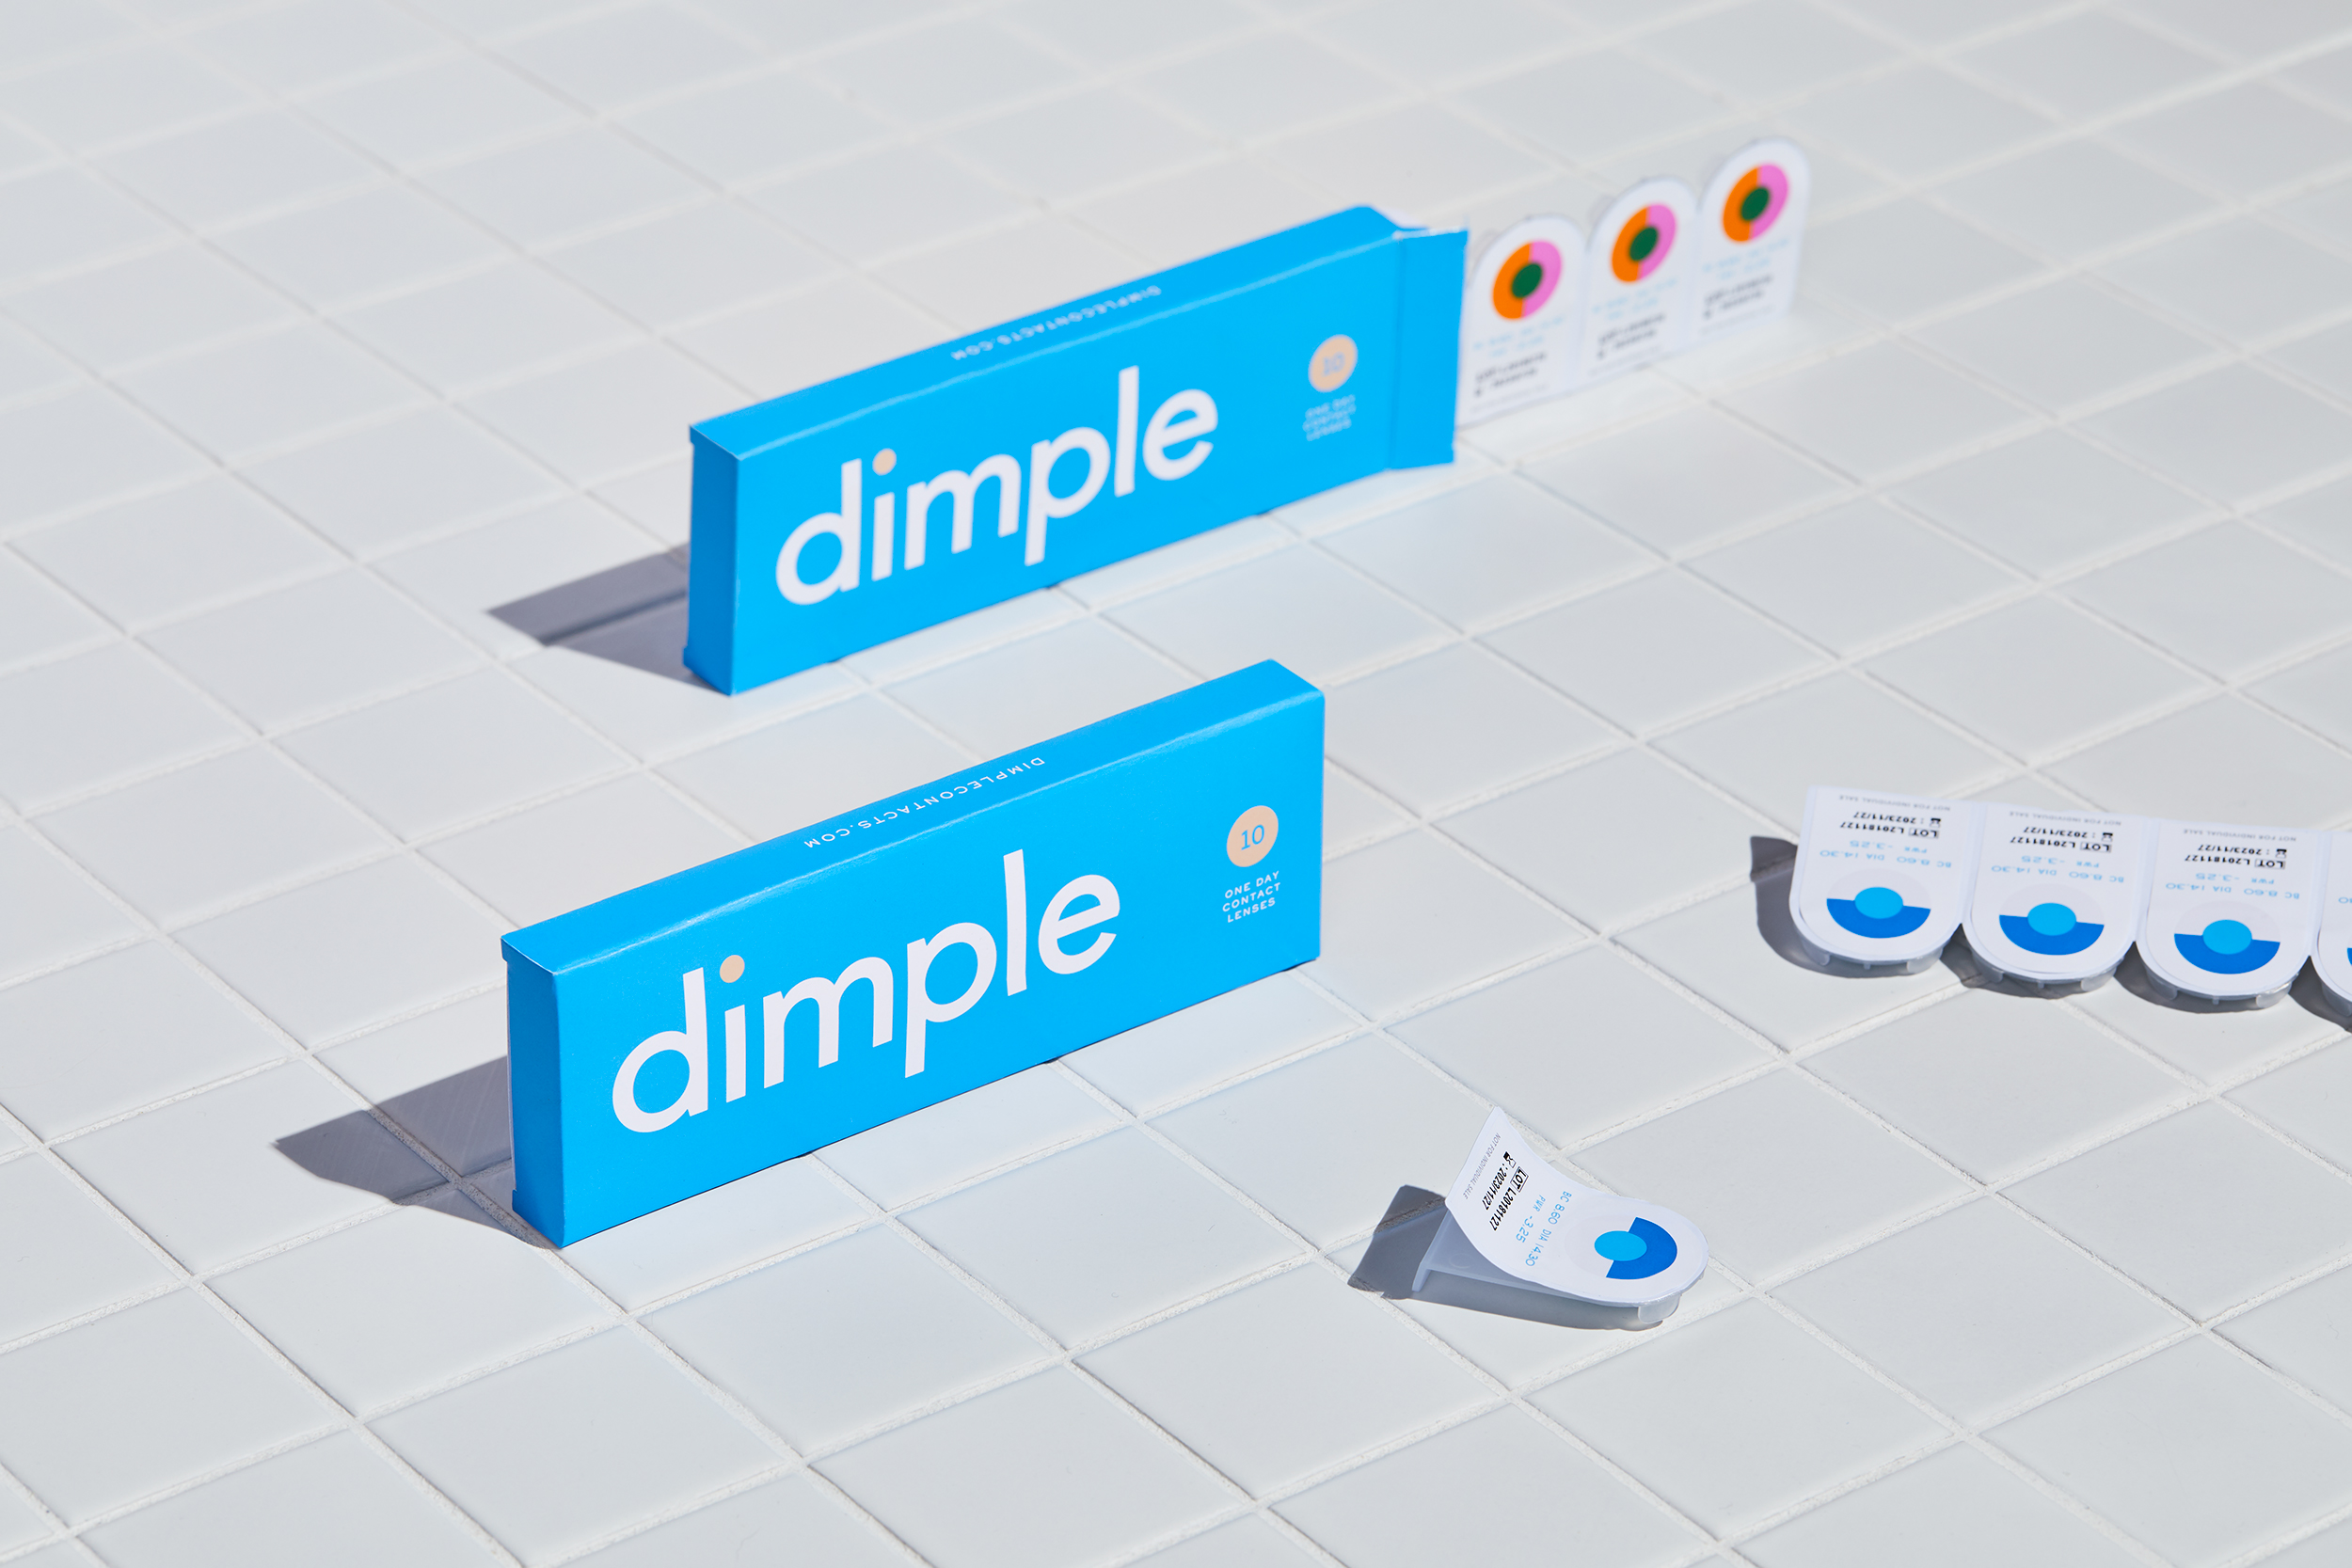 Dimple Contacts shot by Sydney advertising food and lifestyle photographer Benito Martin